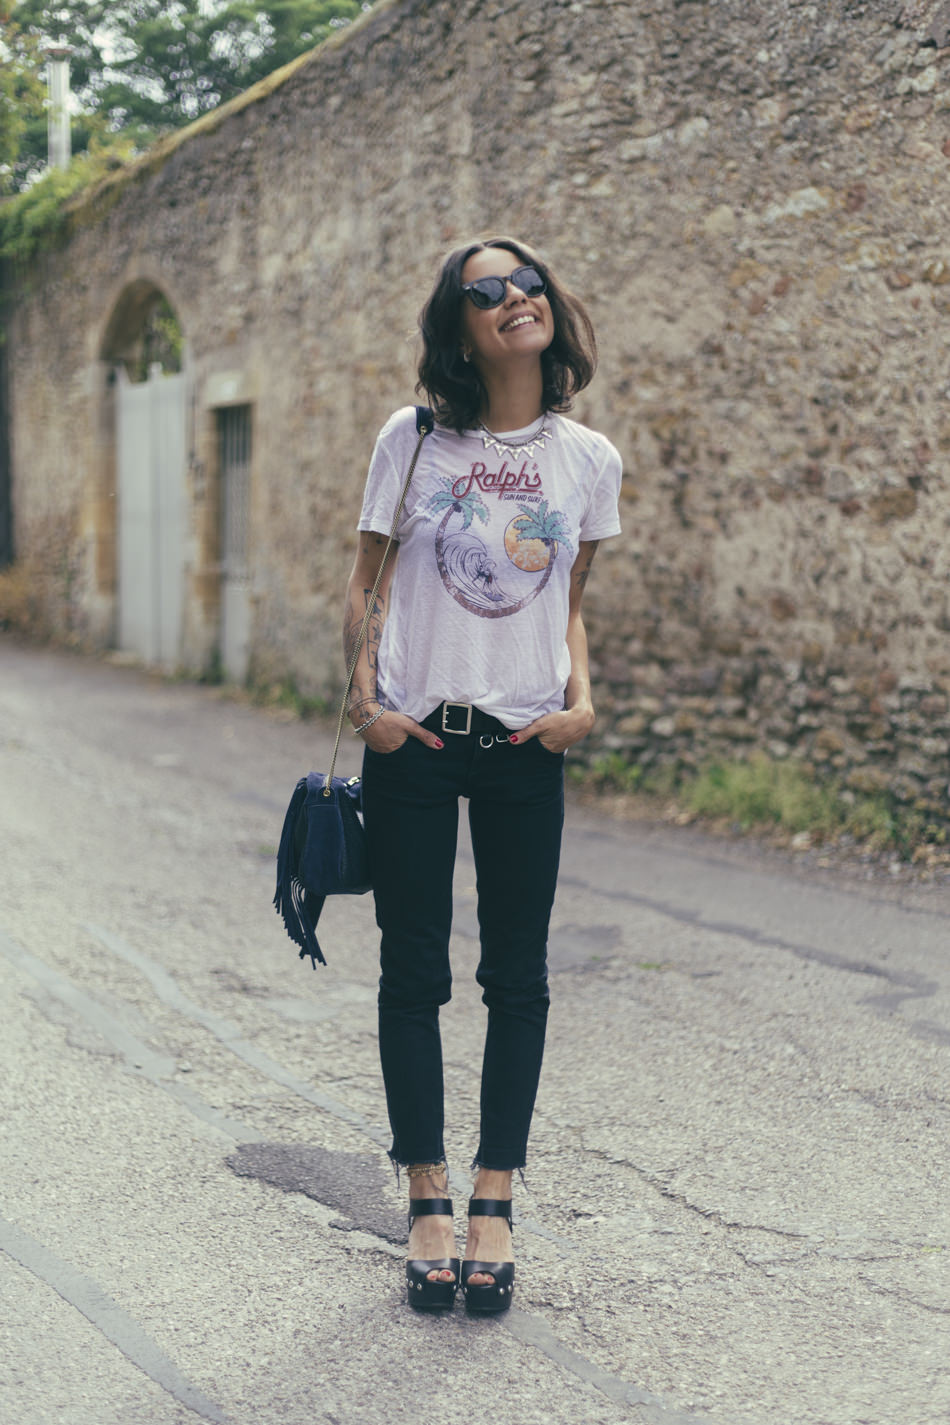 So the tattoo's adds to the overall rocker look, but the statement T-shirt, black skinnies and platforms completes it. Via Coline. T-shirt: Denim&Supply, Jeans: 001 Sezane, Shoes: River Island, Bag: Créations Sacs Mary